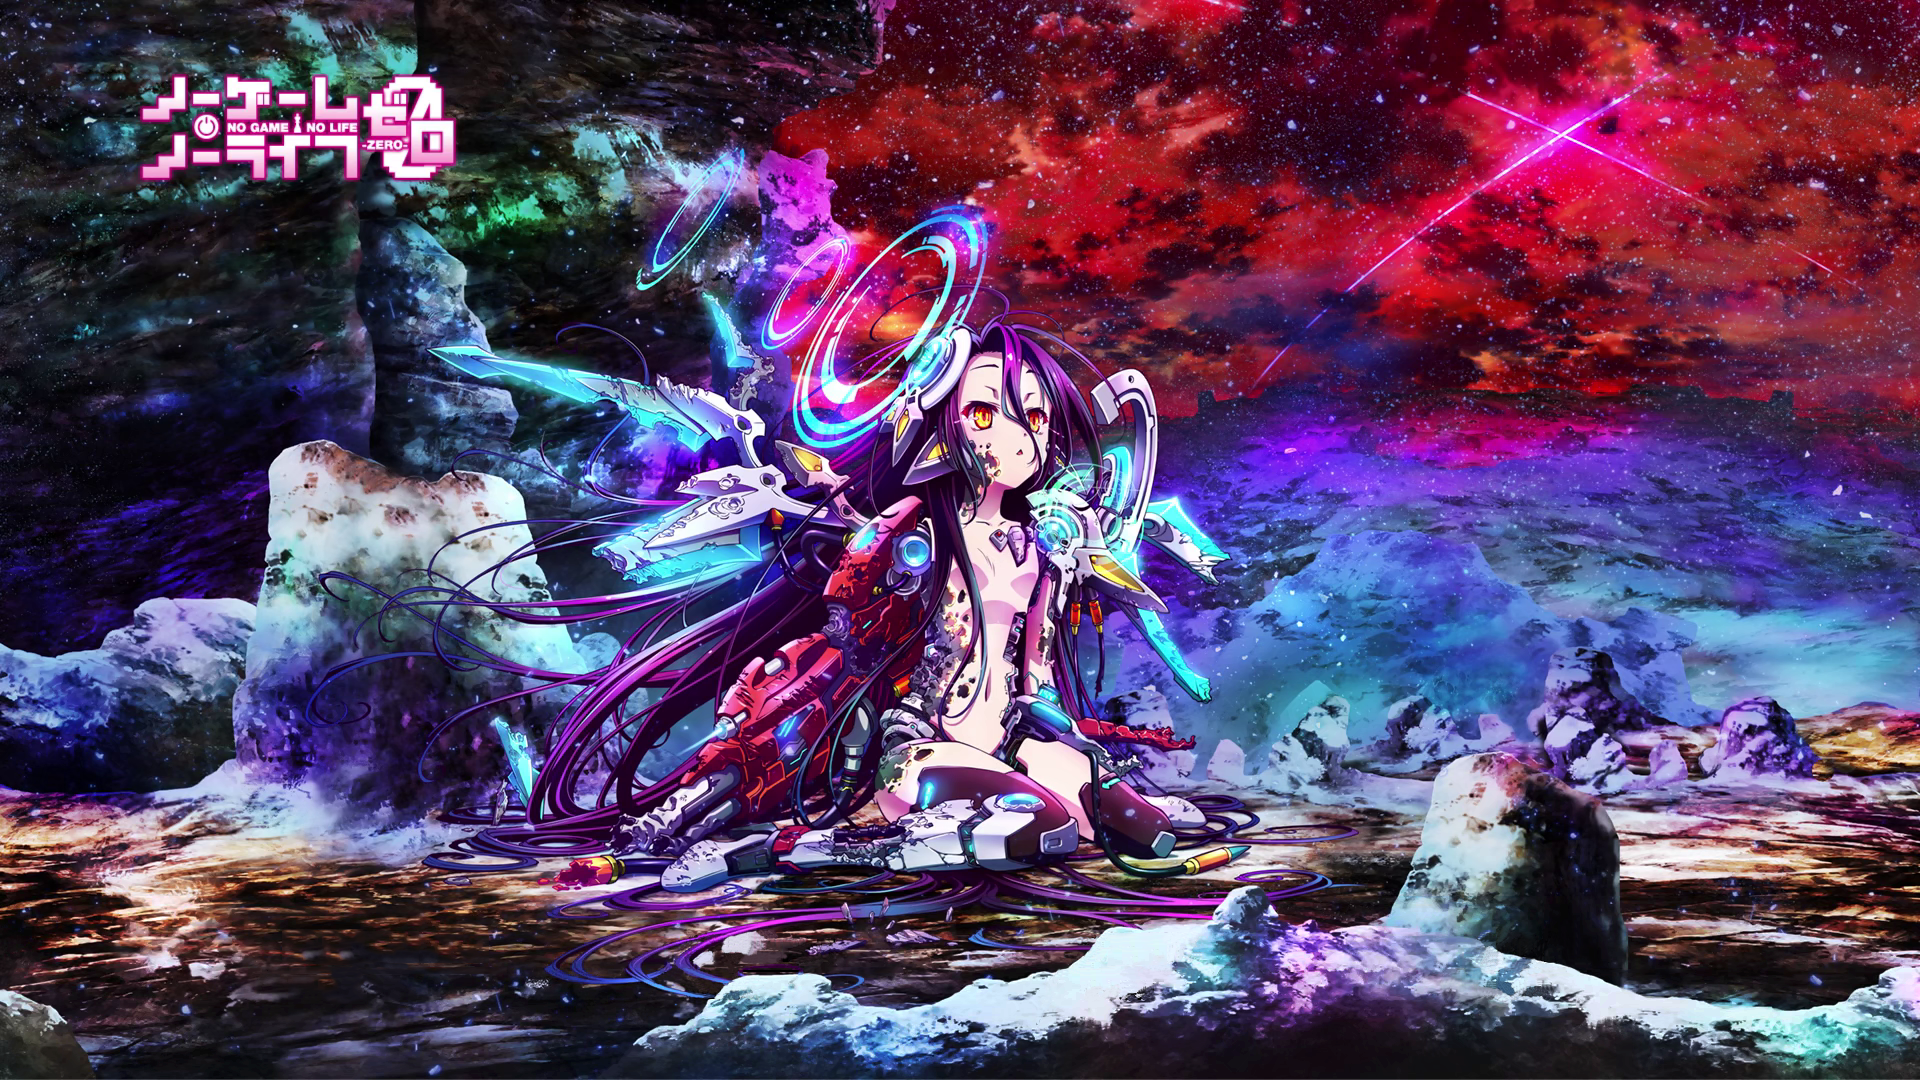 No Game No Life Zero 2339146 Hd Wallpaper Backgrounds